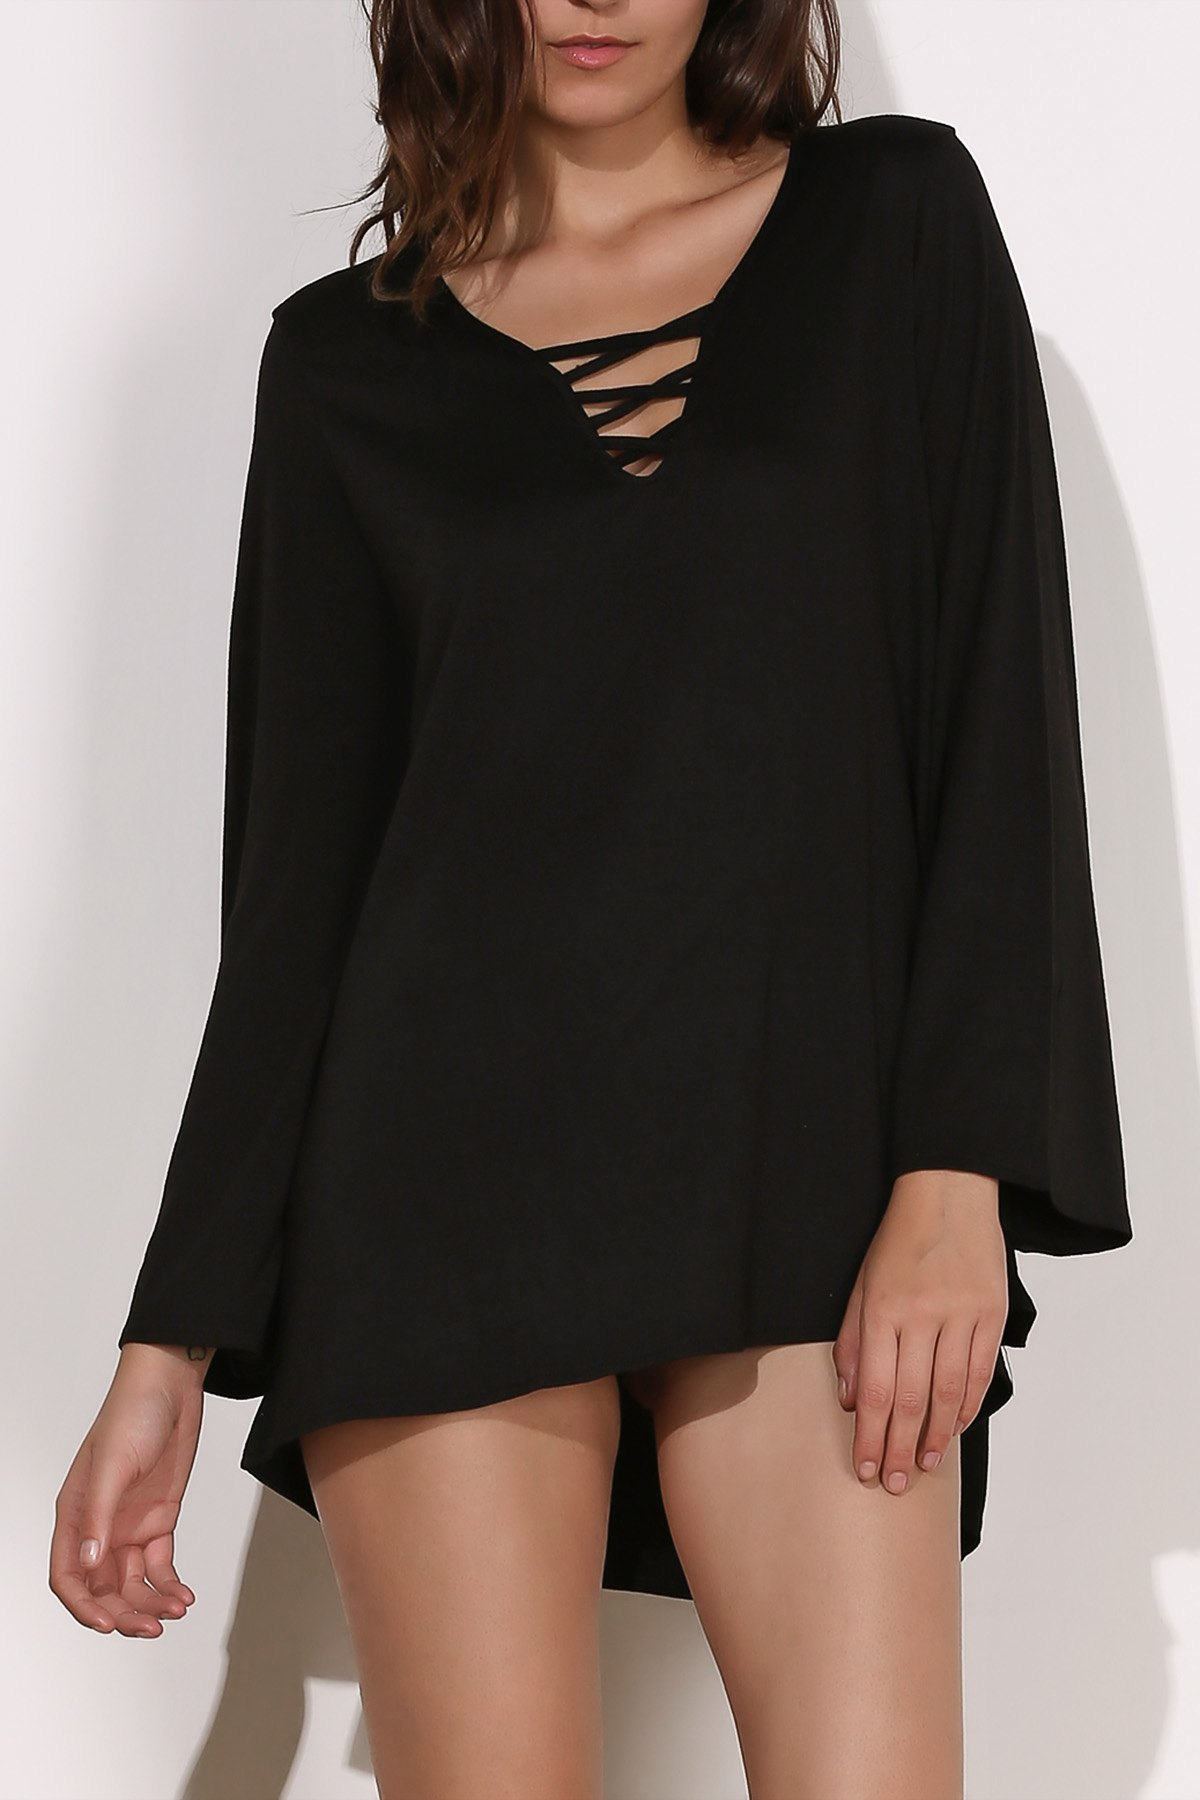 V-Neck Long Sleeve Black Dress